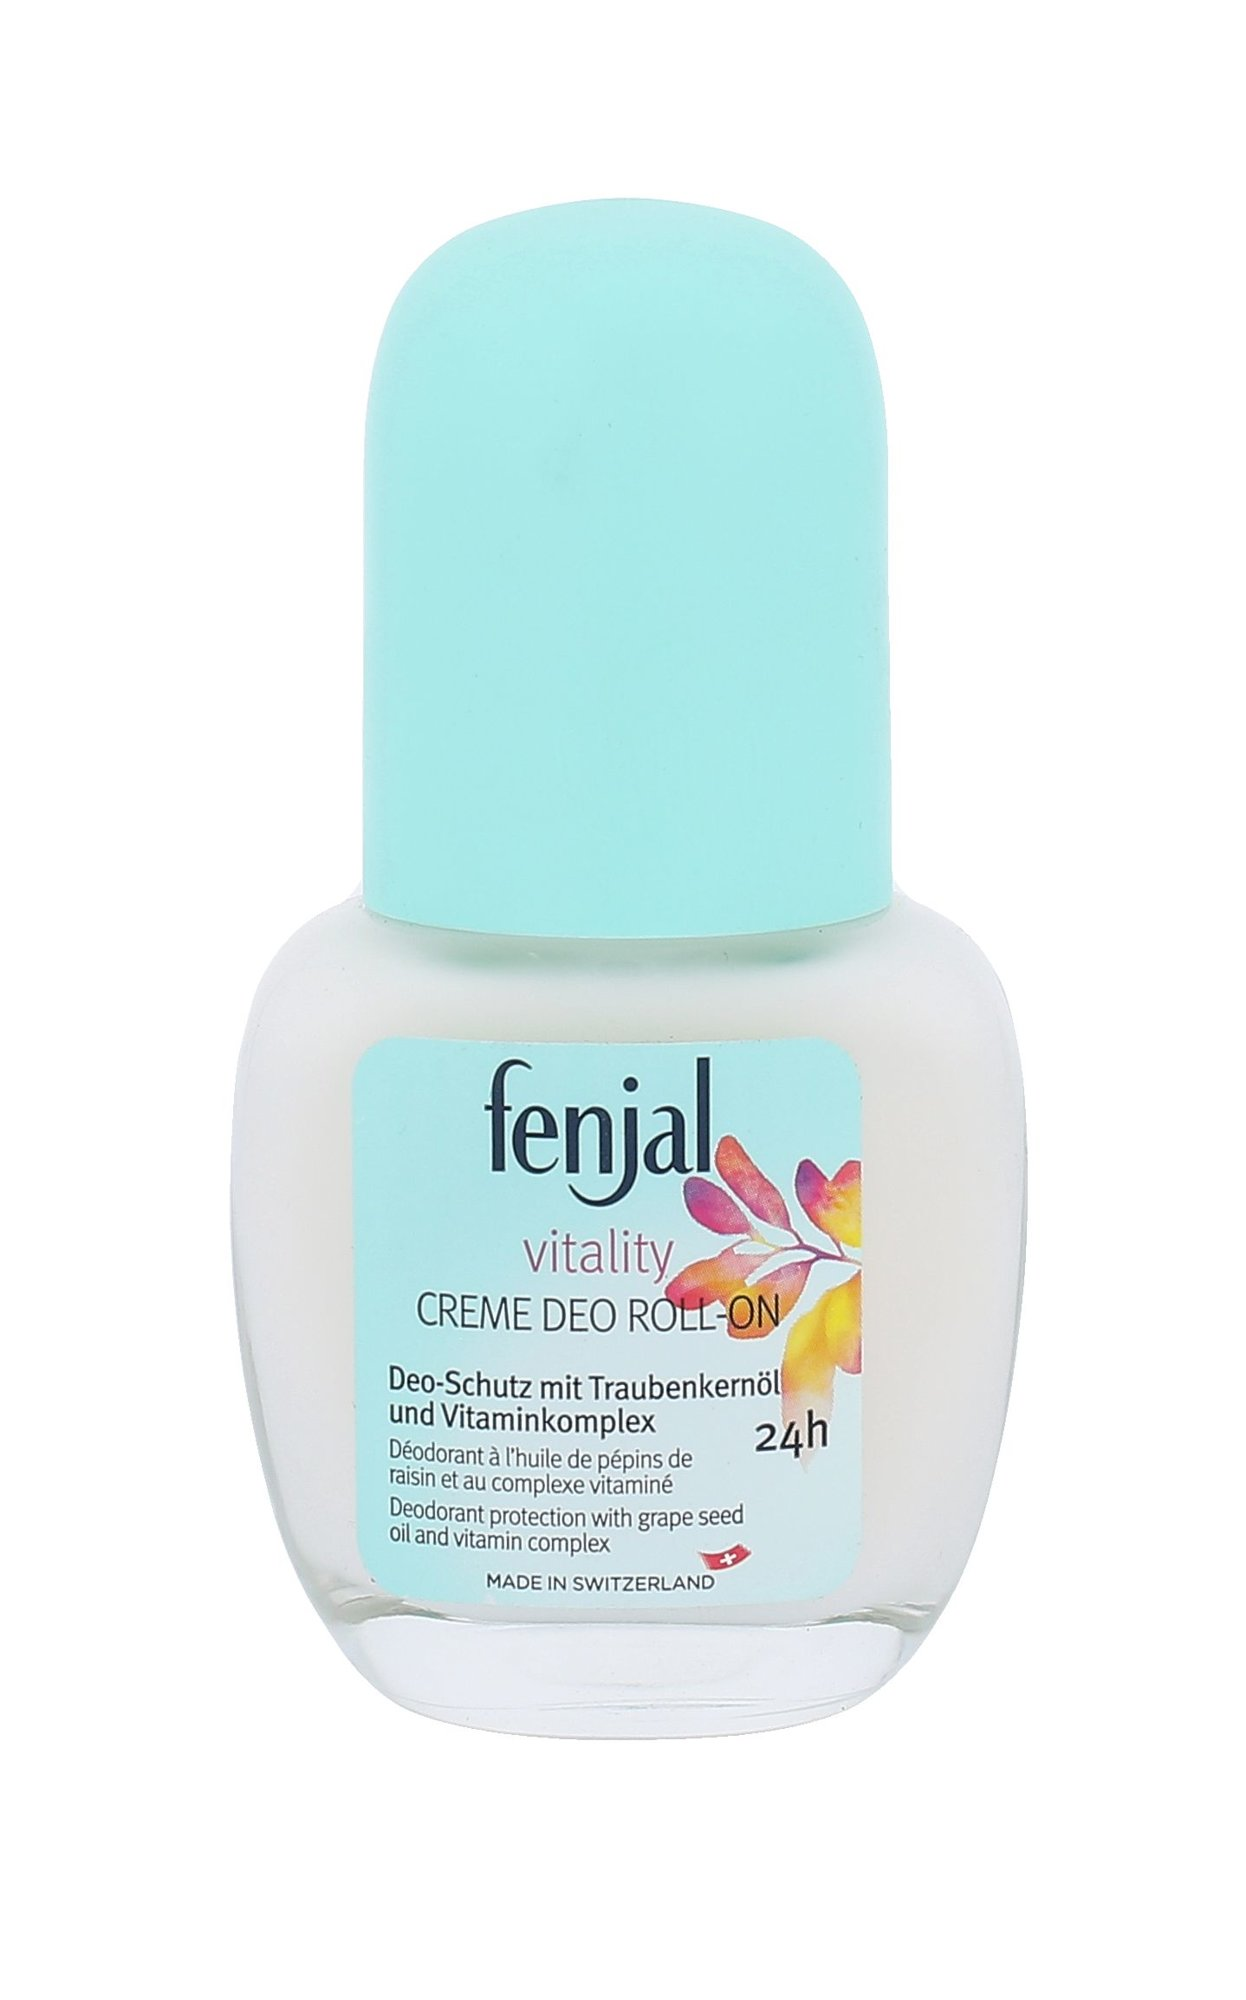 Fenjal Vitality Creme Deo Roll-On 24H Cosmetic 50ml